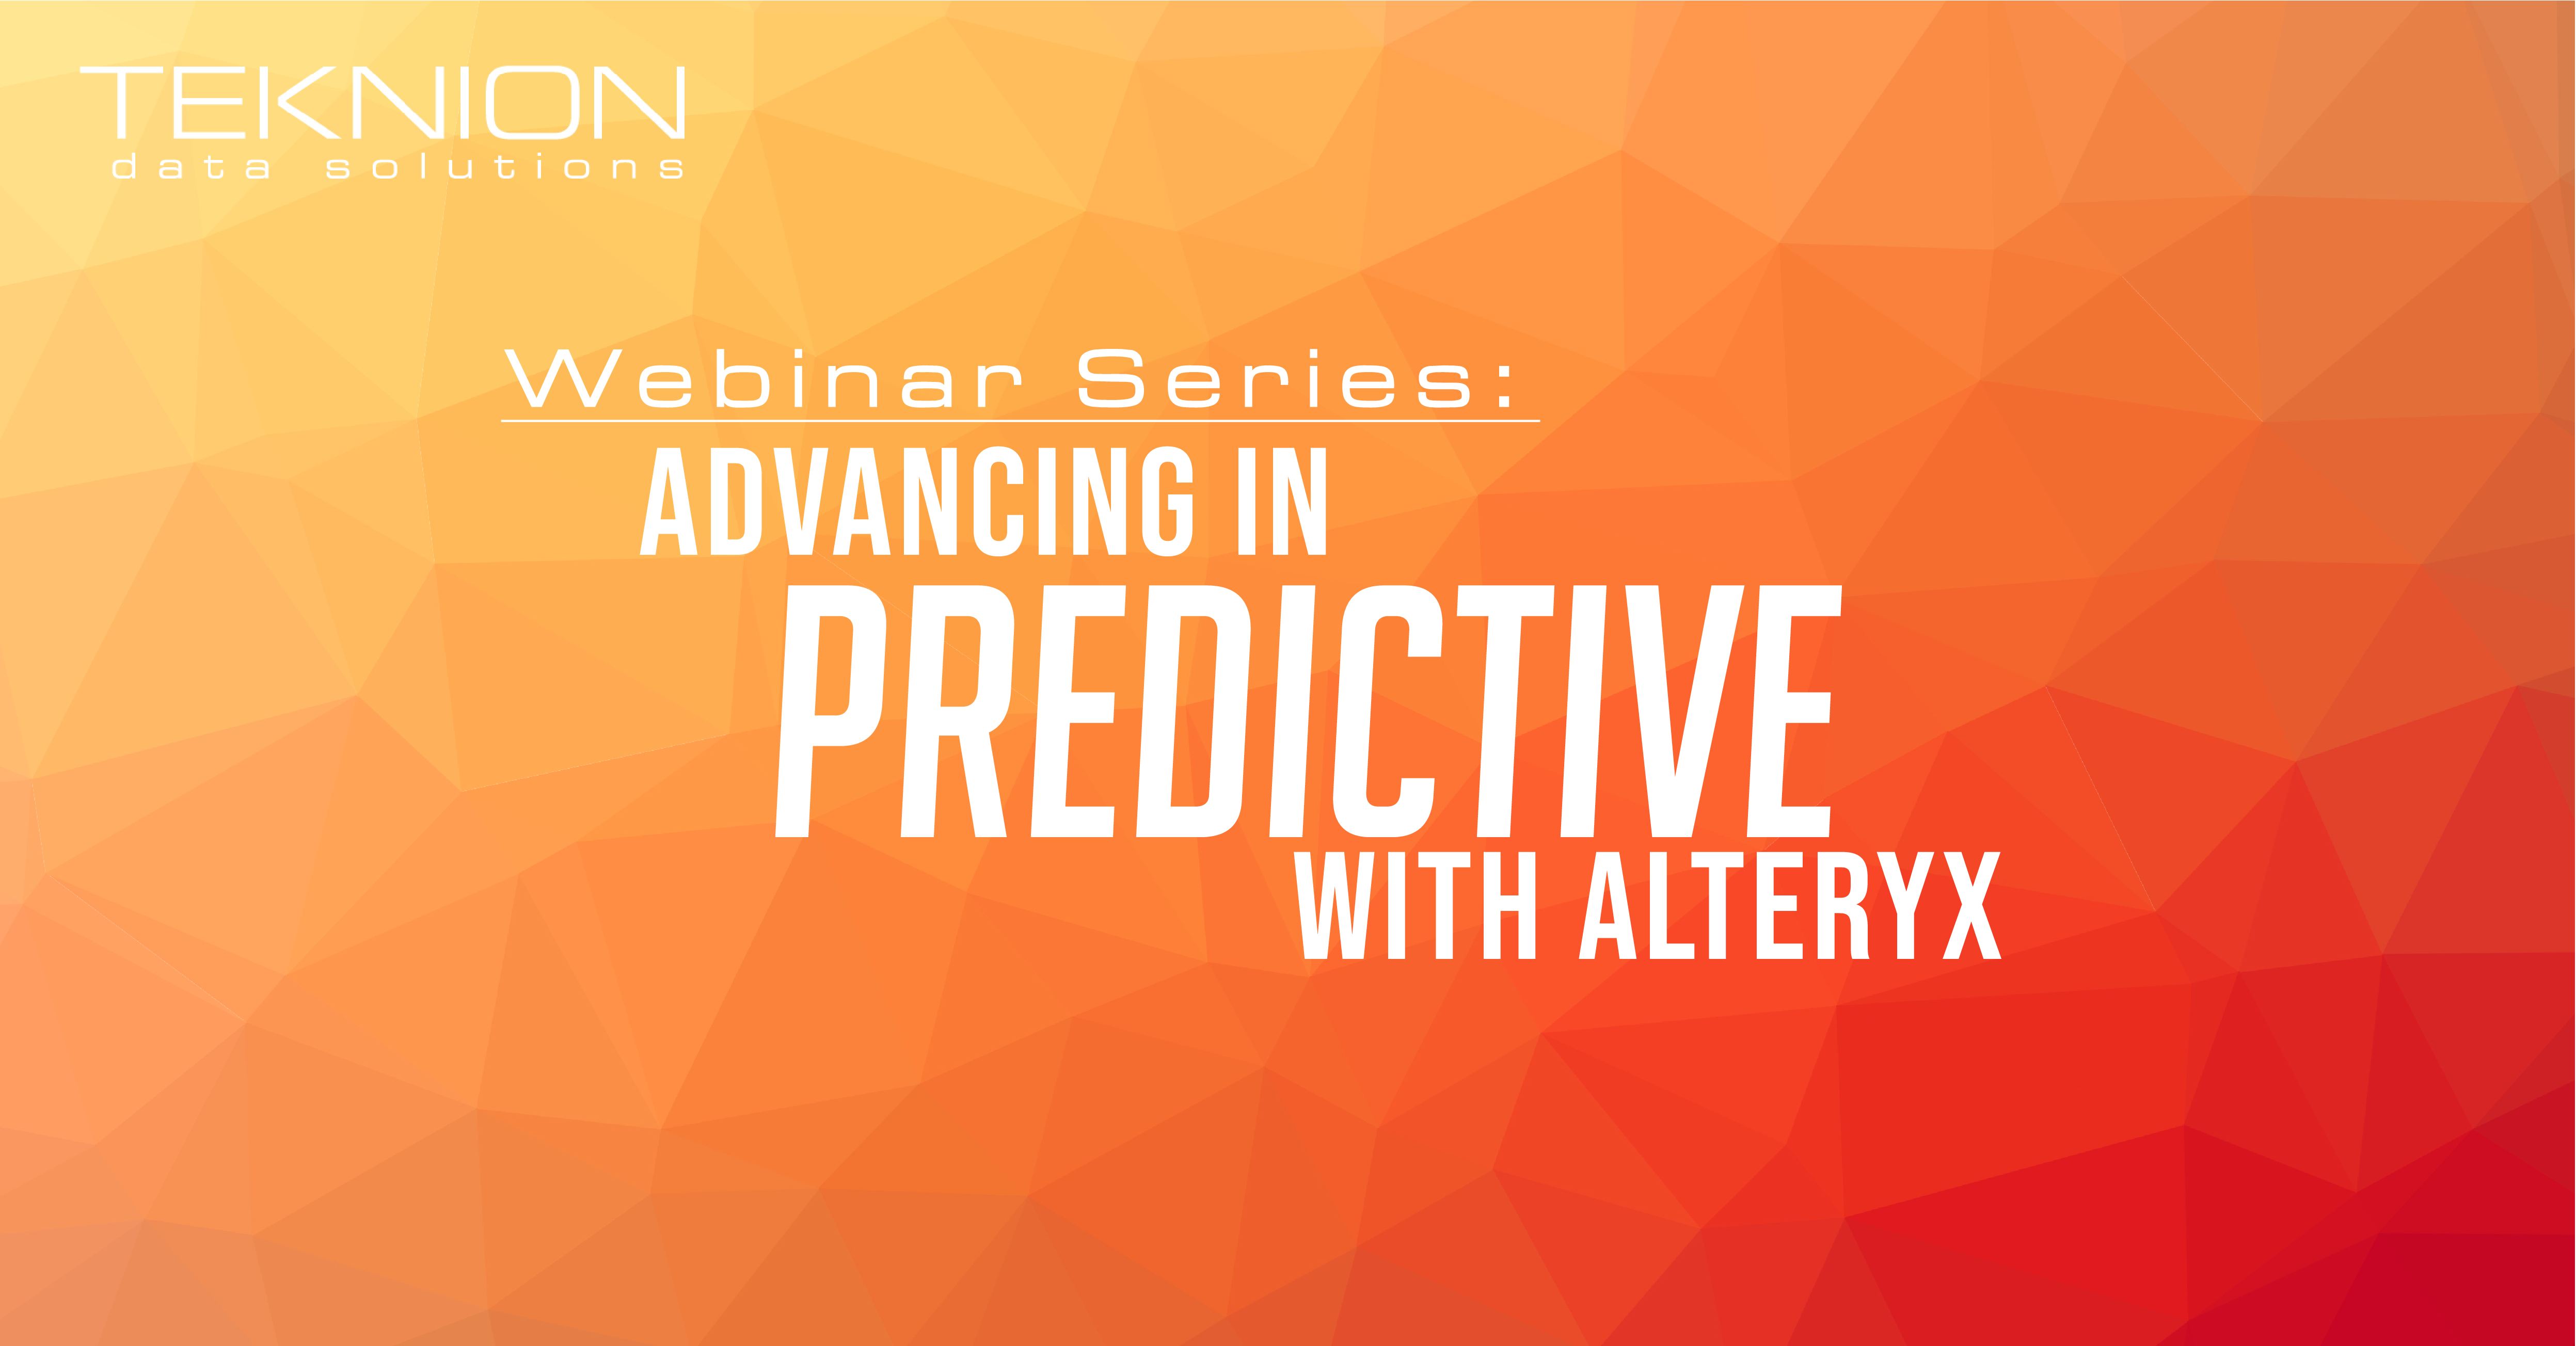 Webinar Series: Advancing in Predictive with Alteryx